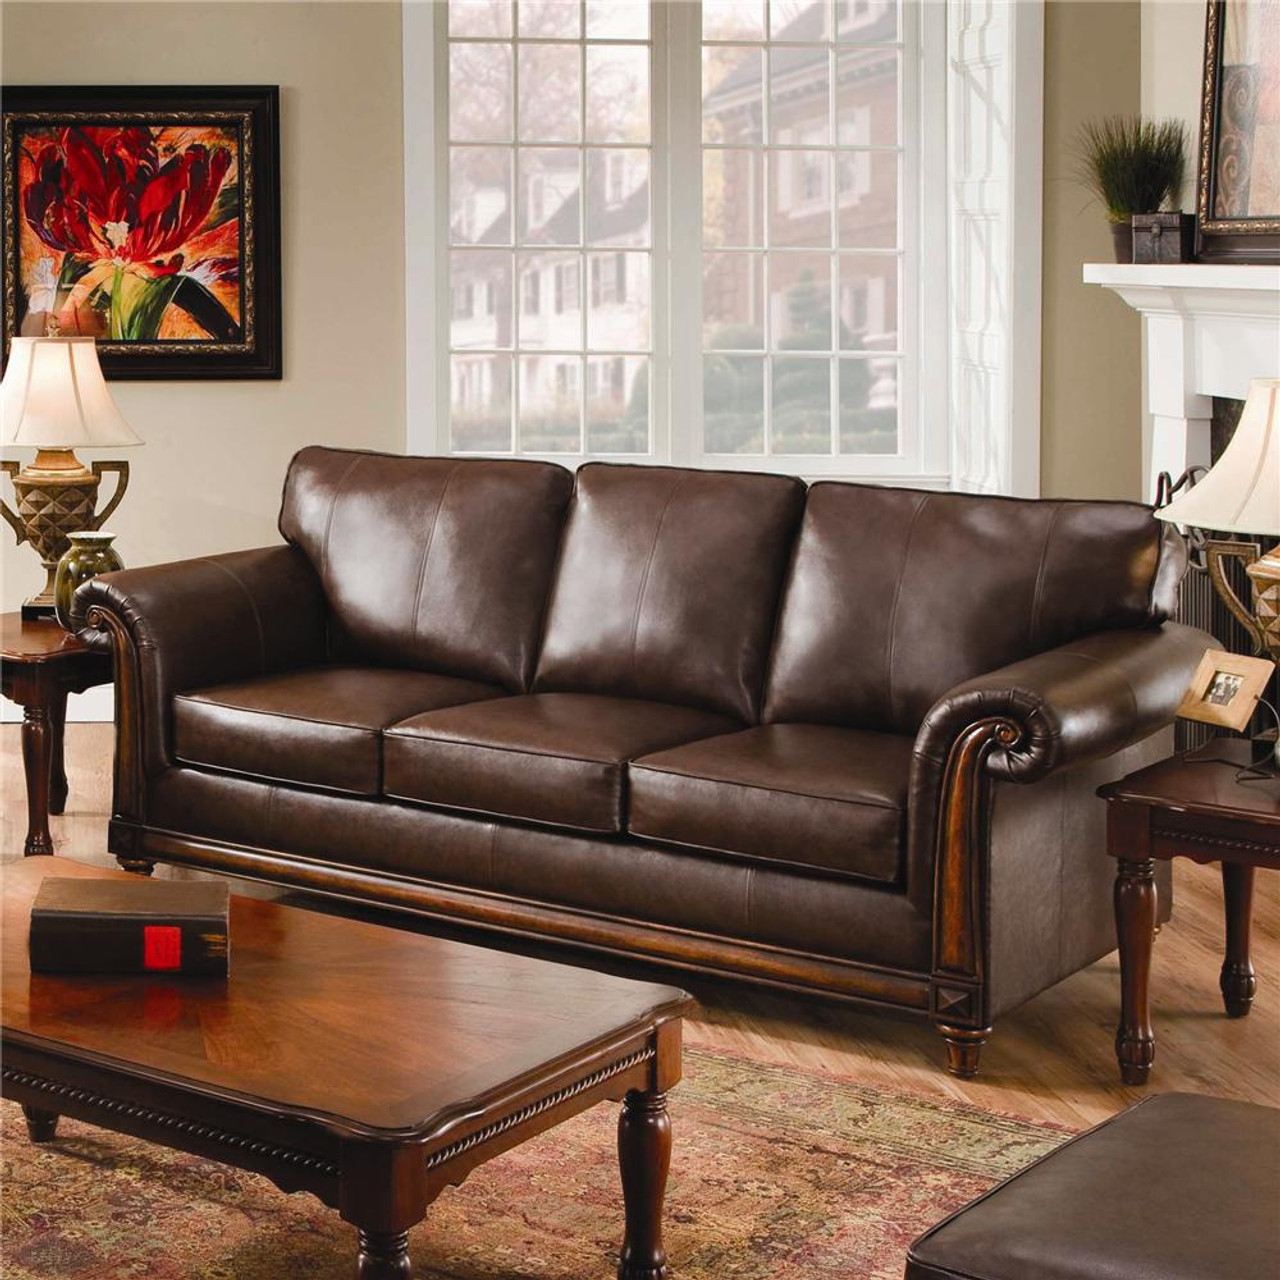 The San Diego Leather Sofa available at Discount Furniture Center ...